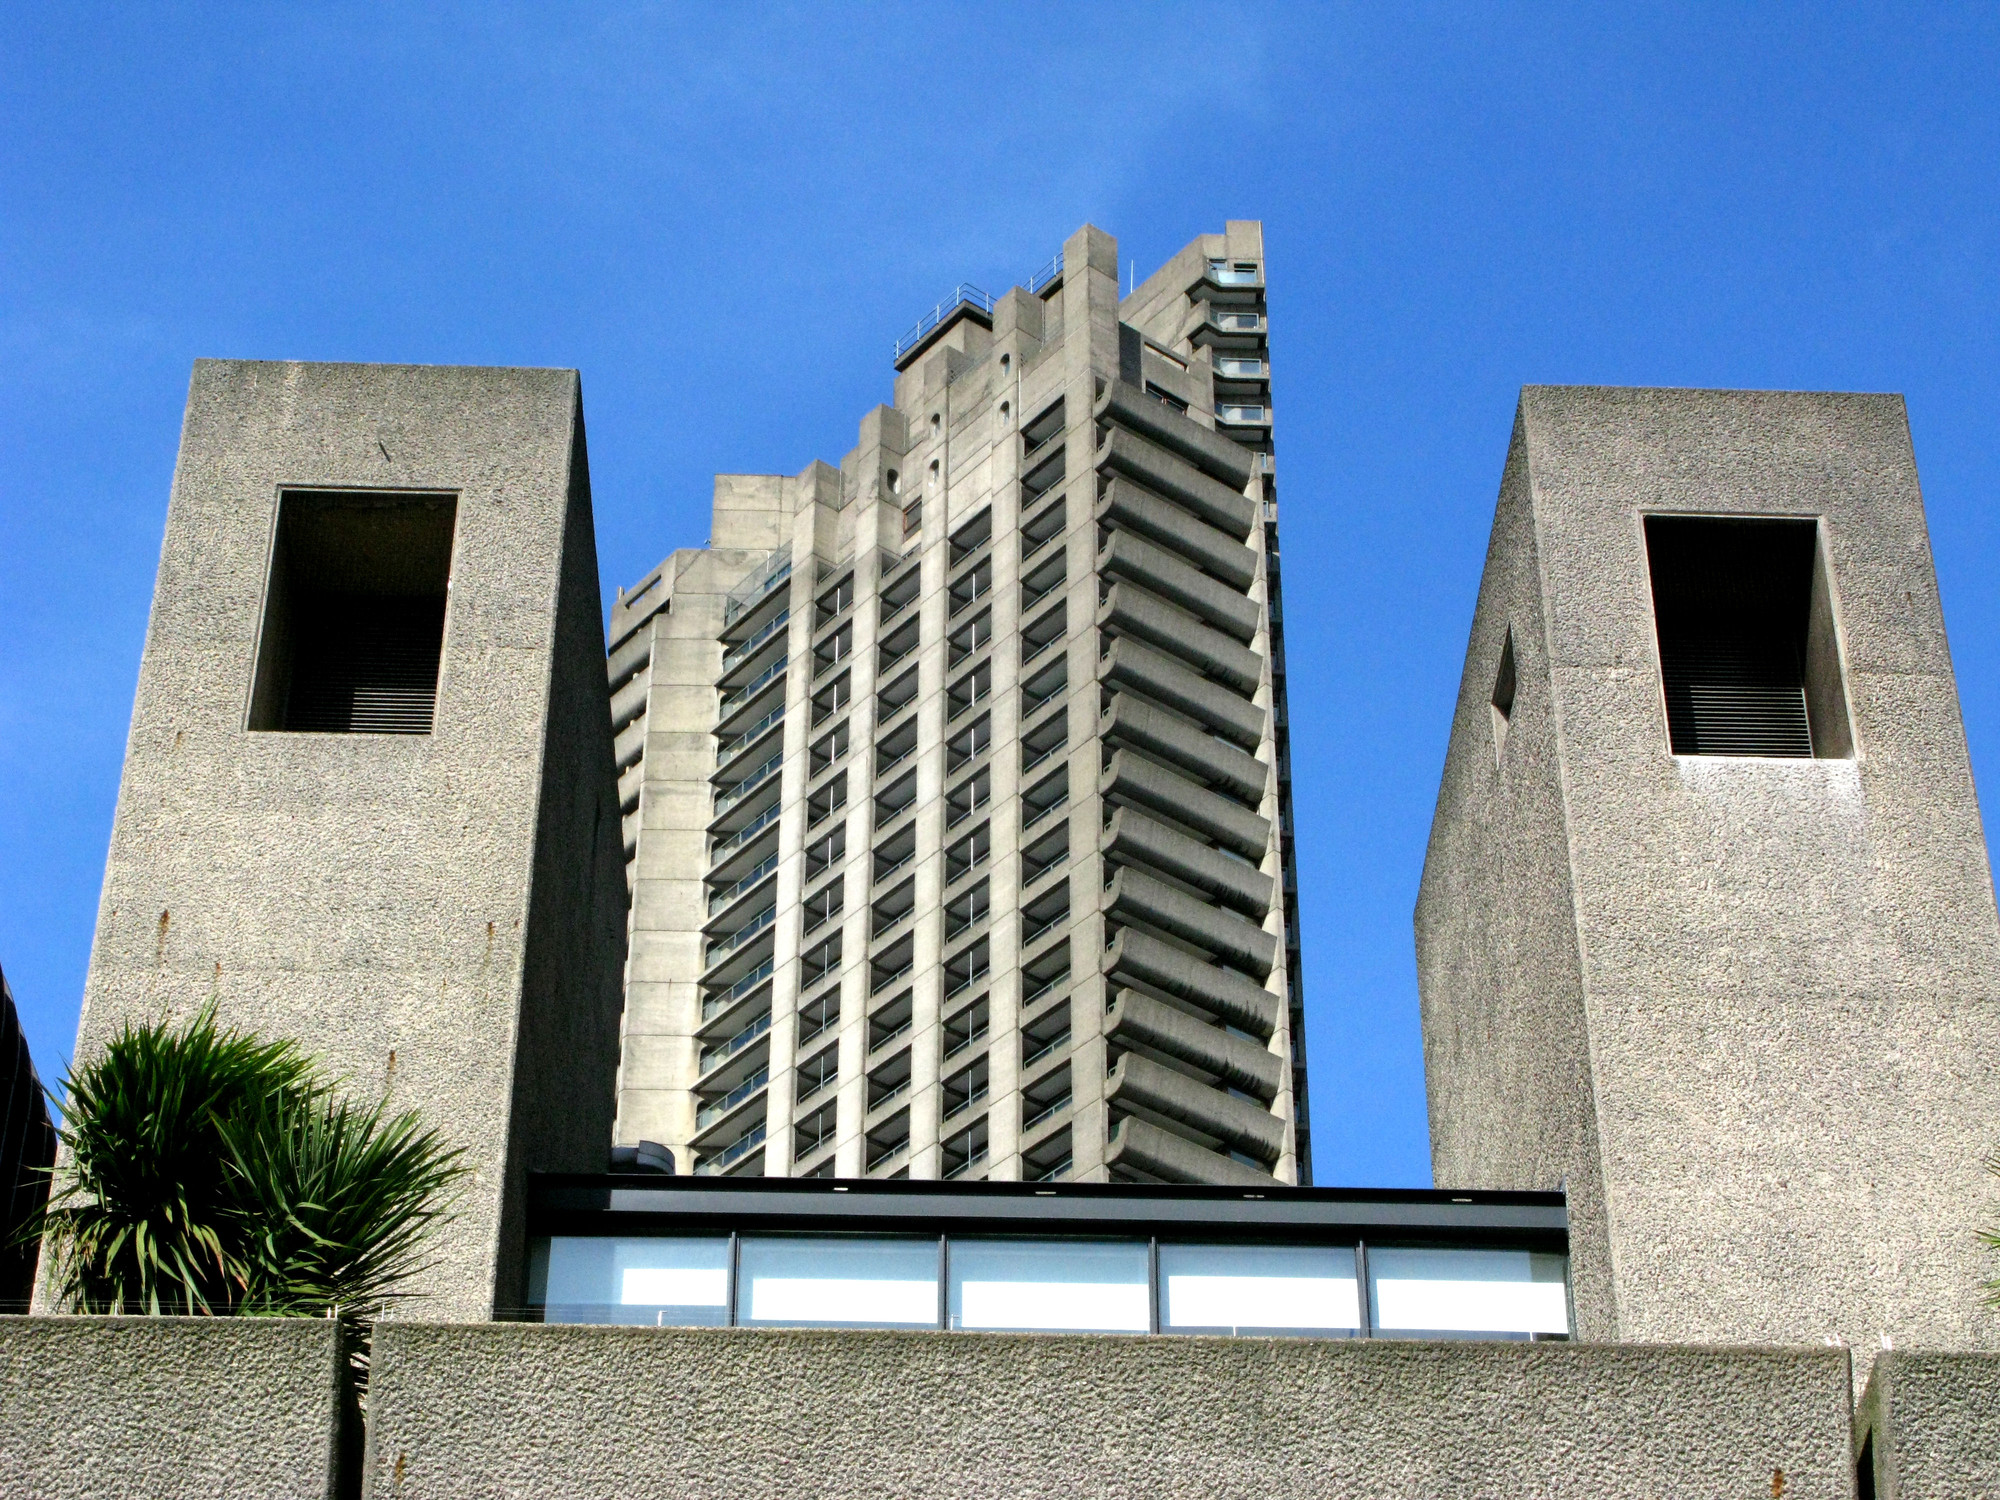 The Barbican in London. Image © Flickr CC User Rene Passet